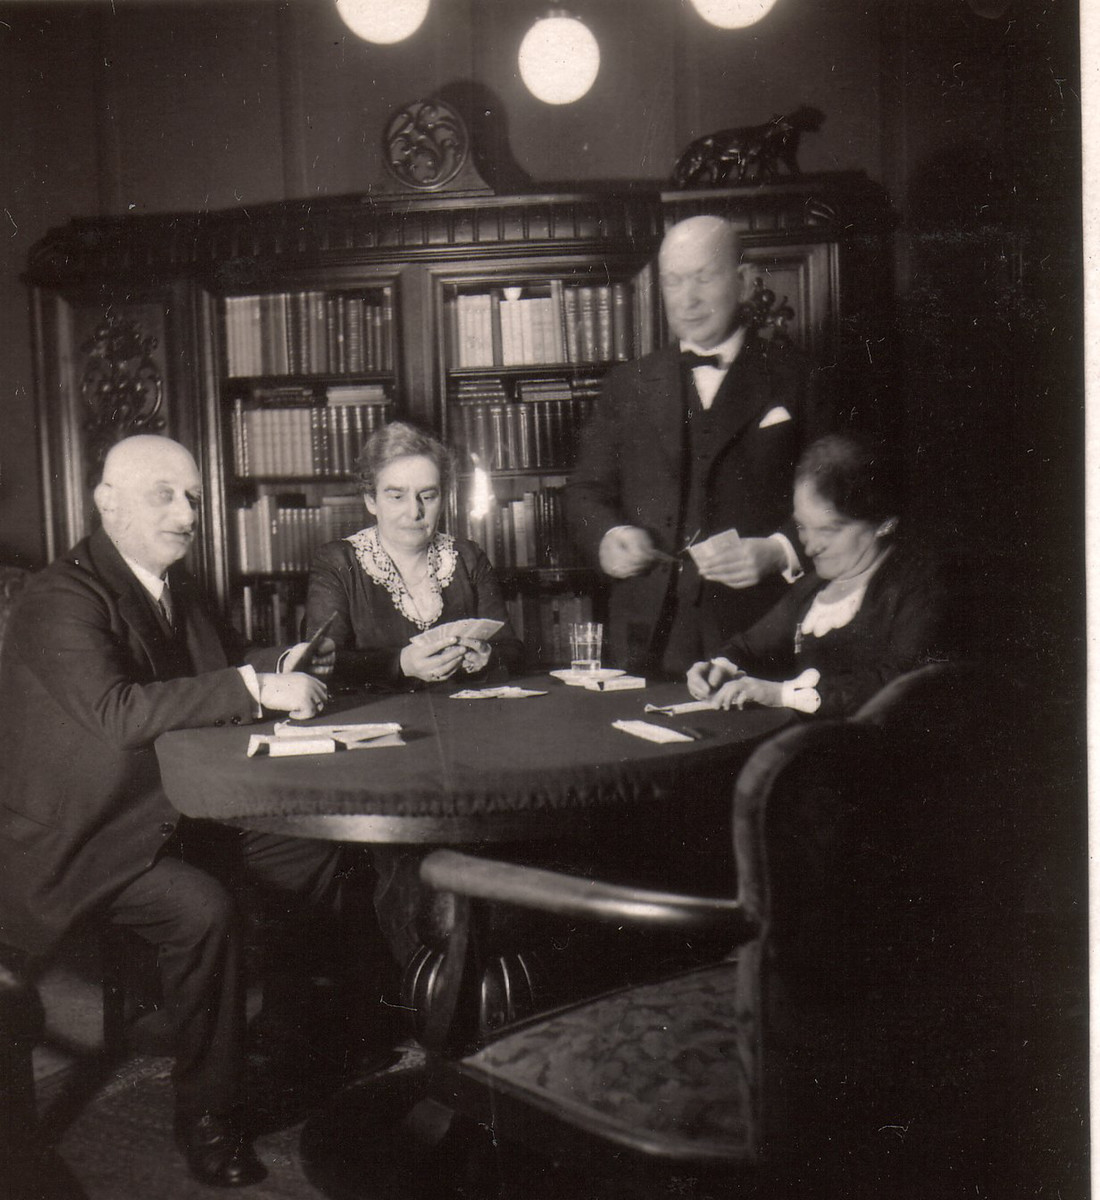 At home in the Weinlaub's parlor in Hannover, two Jewish families get together for bridge .  Seated left to right are Luis Rehfisch, Gertrude Weinlaub and Bertha Rehfisch. Adolph Weinlaub is standing behind Bertha.